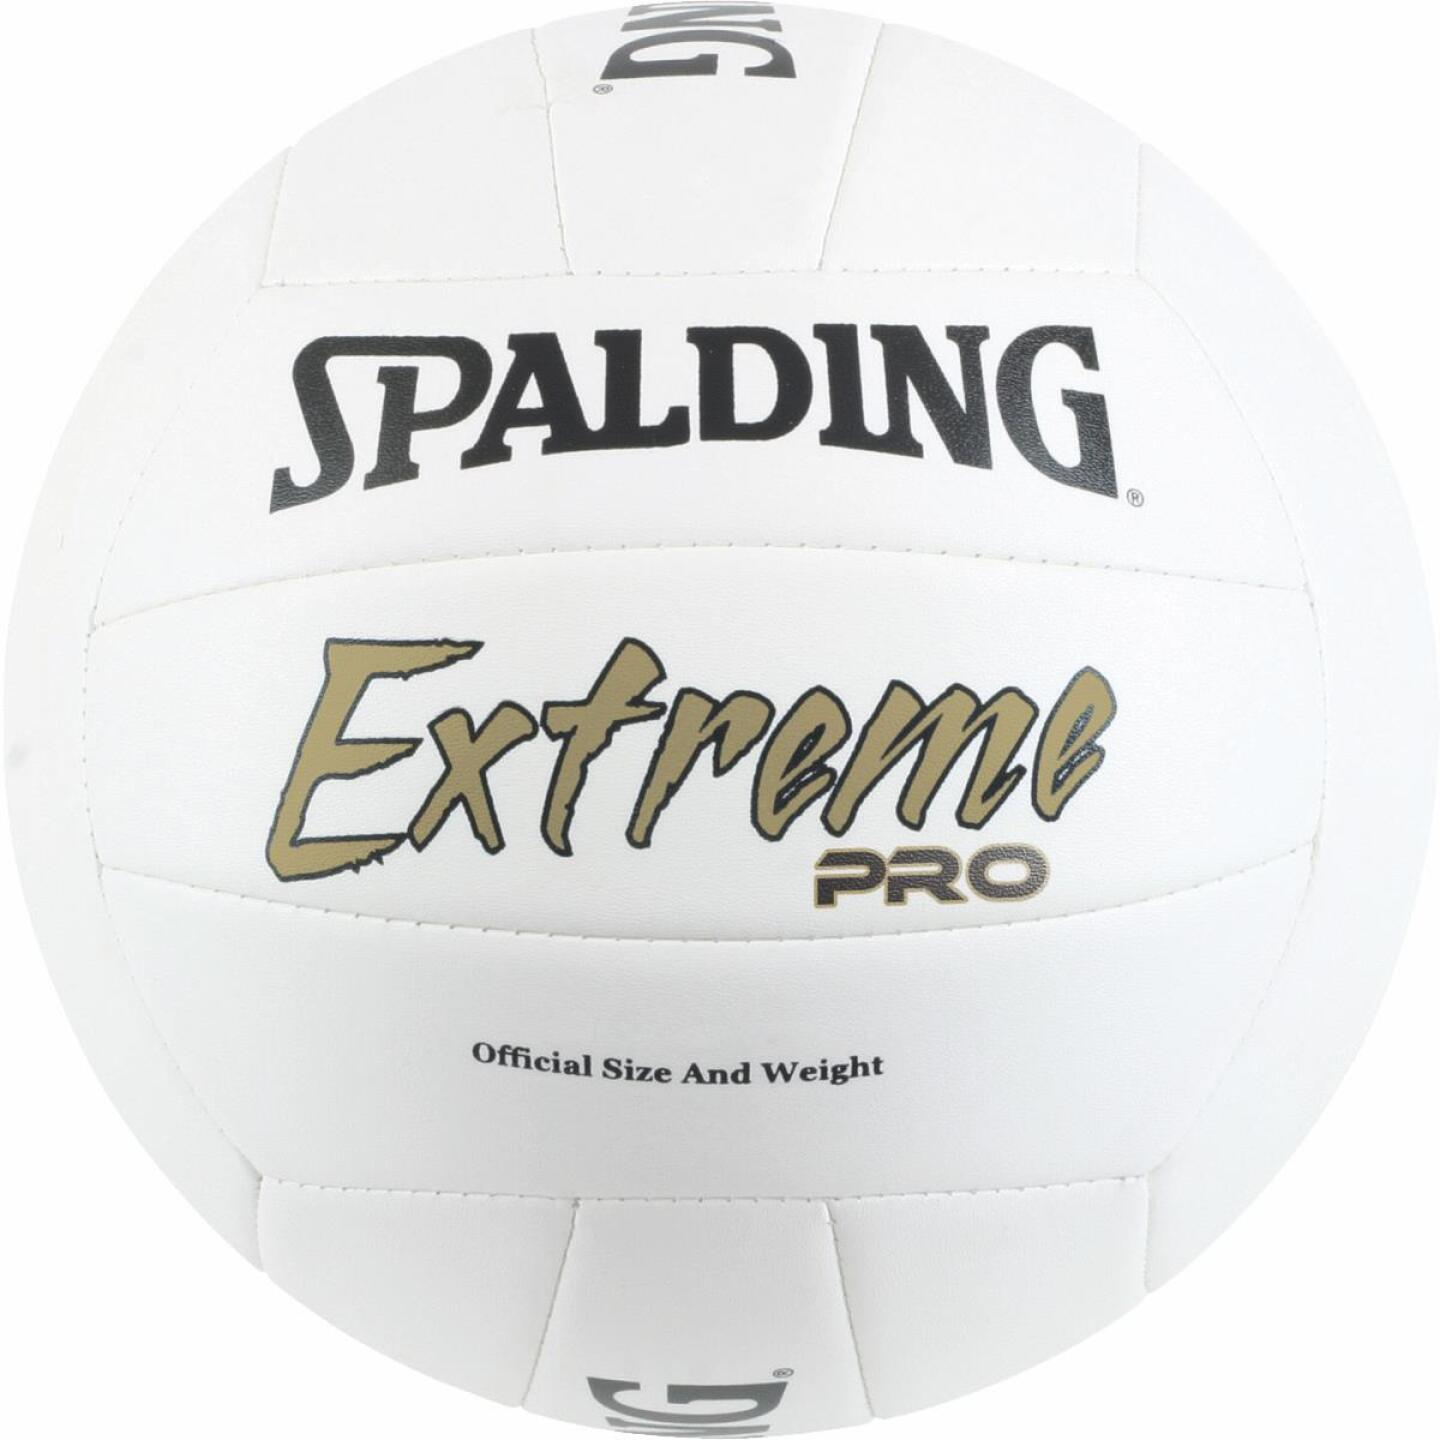 EXTREME PRO VOLLEYBALL Image 1